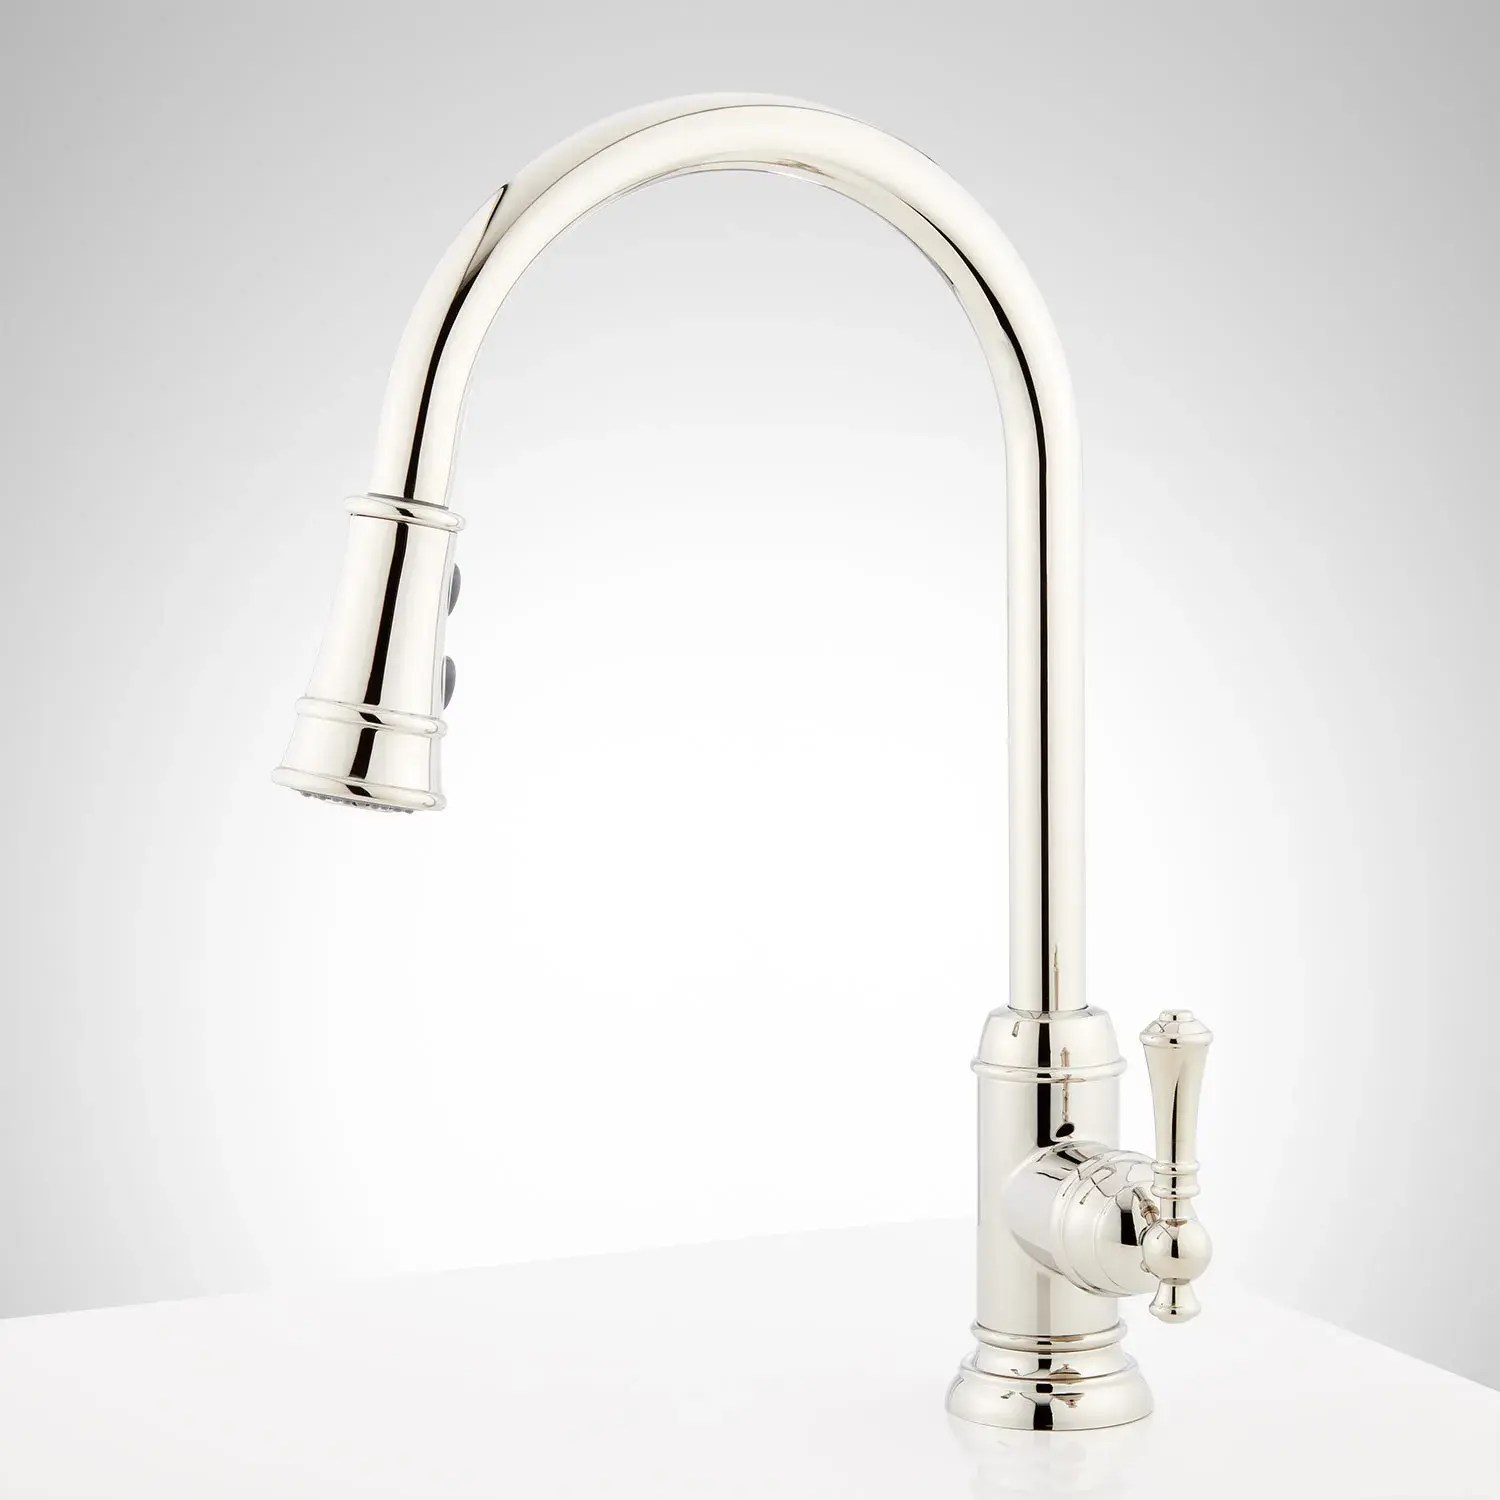 amberley single hole pull down kitchen faucet